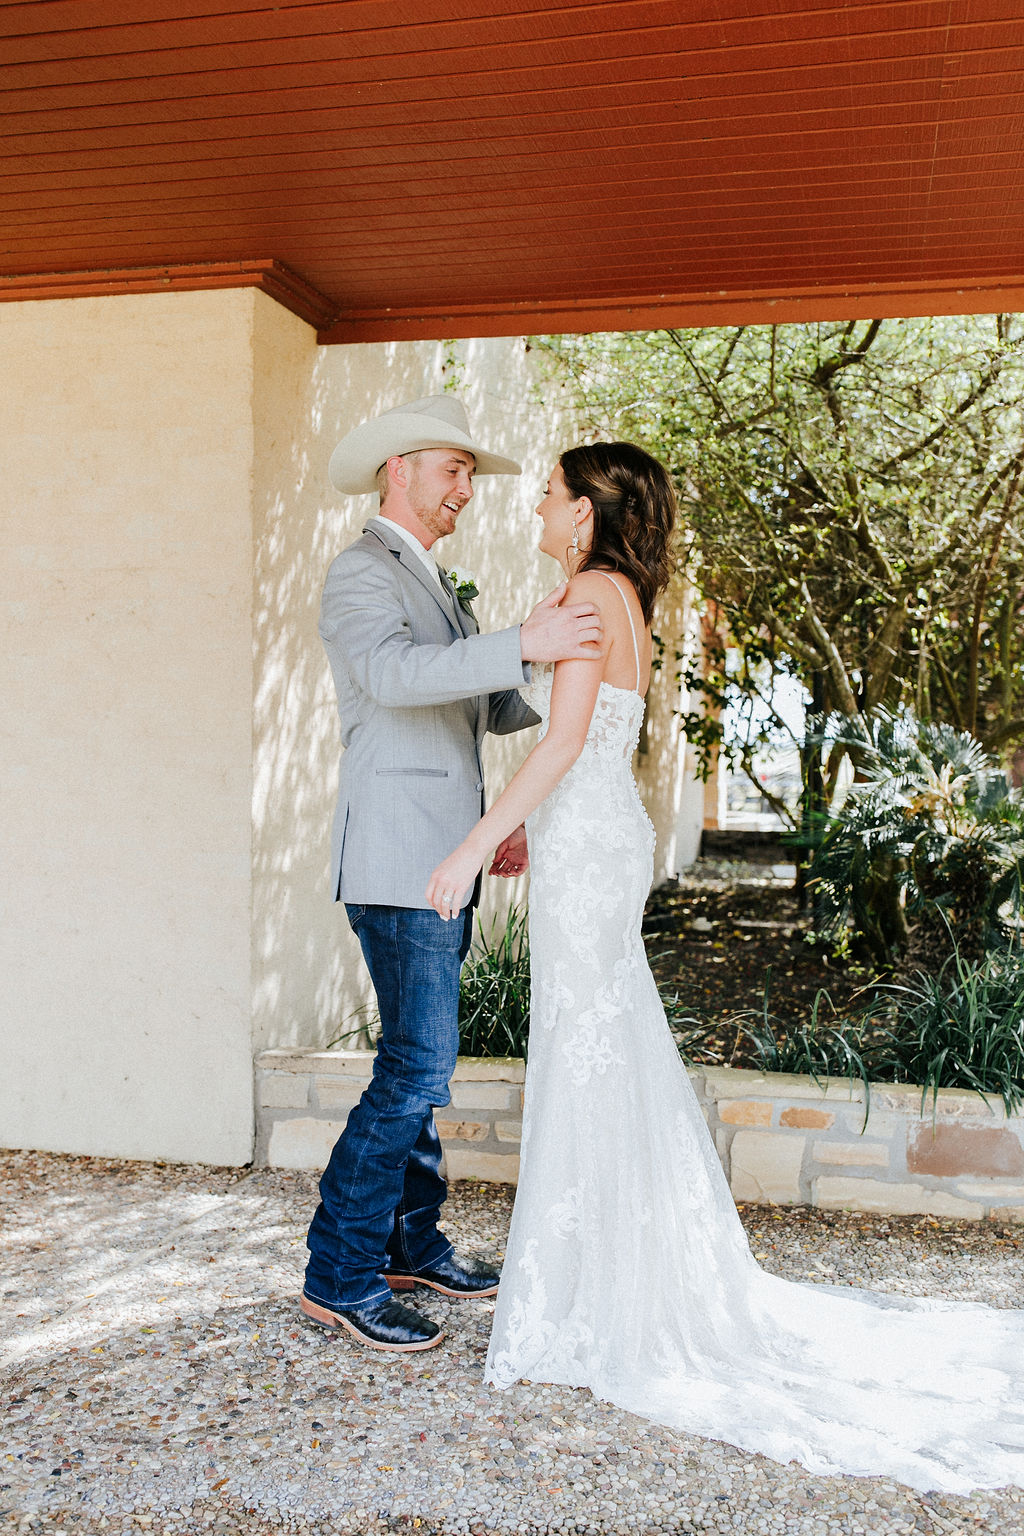 First Look Wedding Pictures Bride Groom Kaleigh Riley Velvet Wire Photography Texas Wedding Planners Epoch Co